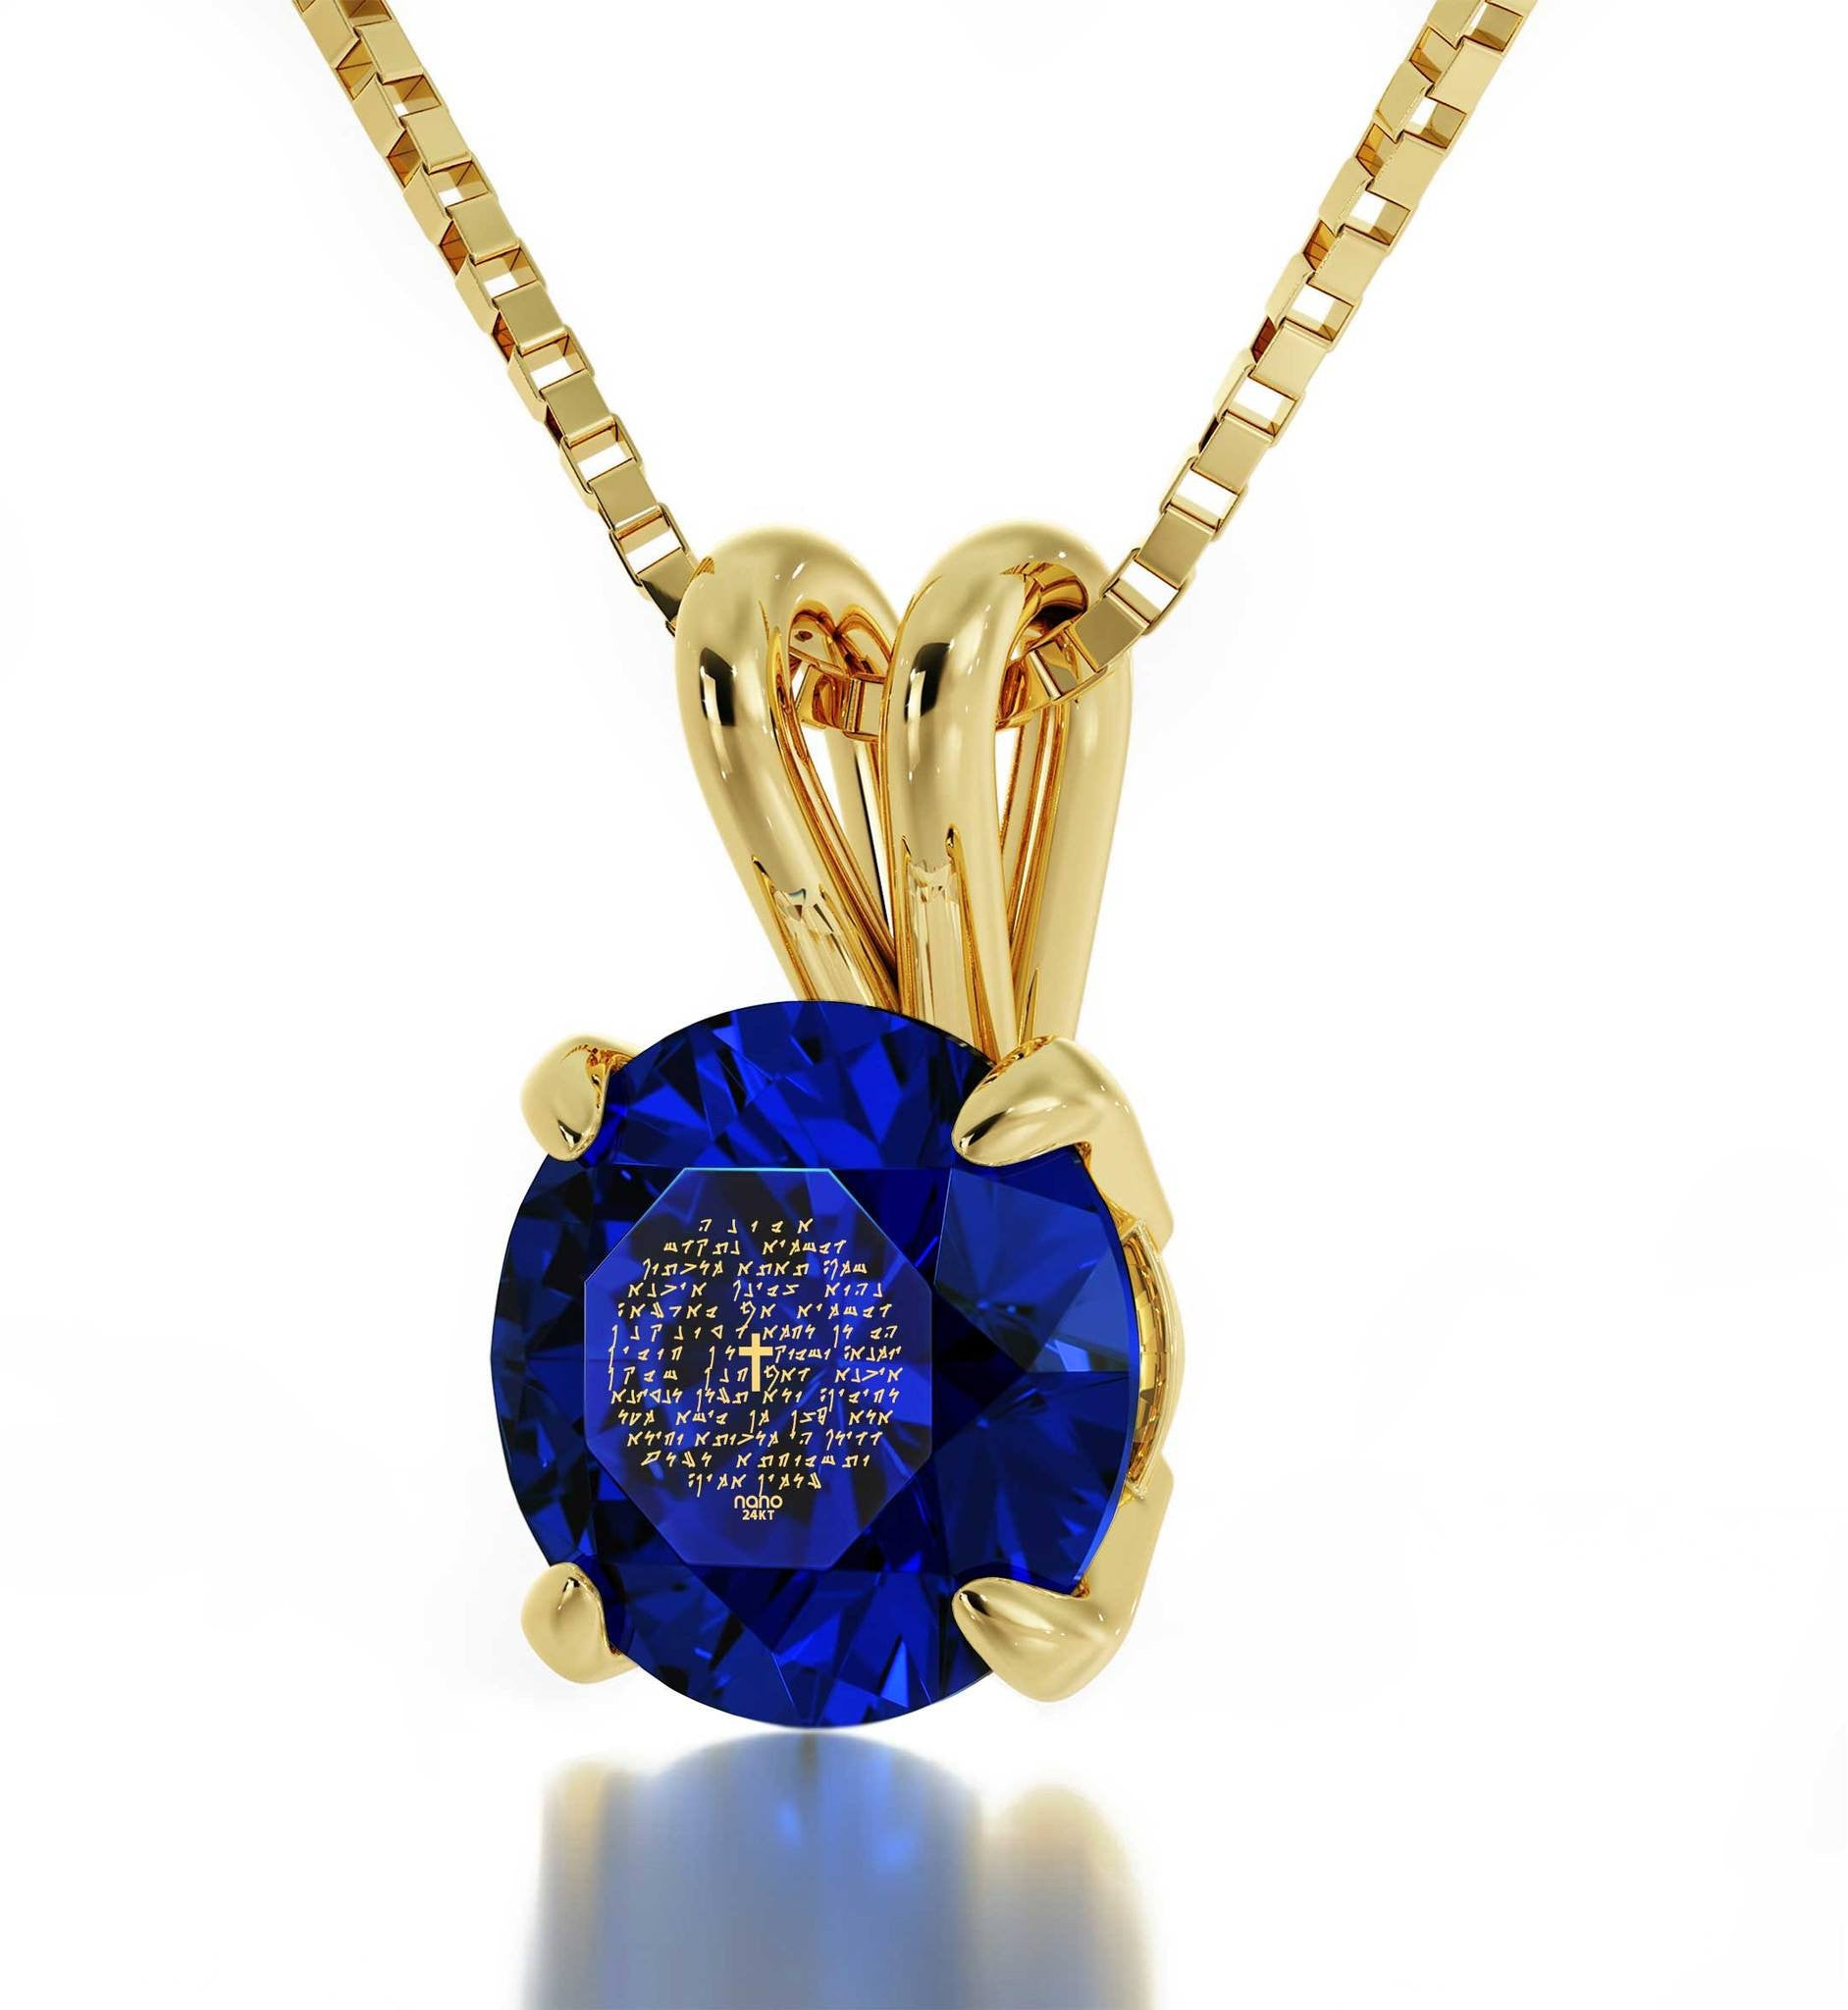 """""Our Father"" in Aramaic, Top Gifts for Wife, Good Presents for Girlfriend, Gold Chain With Pendant """